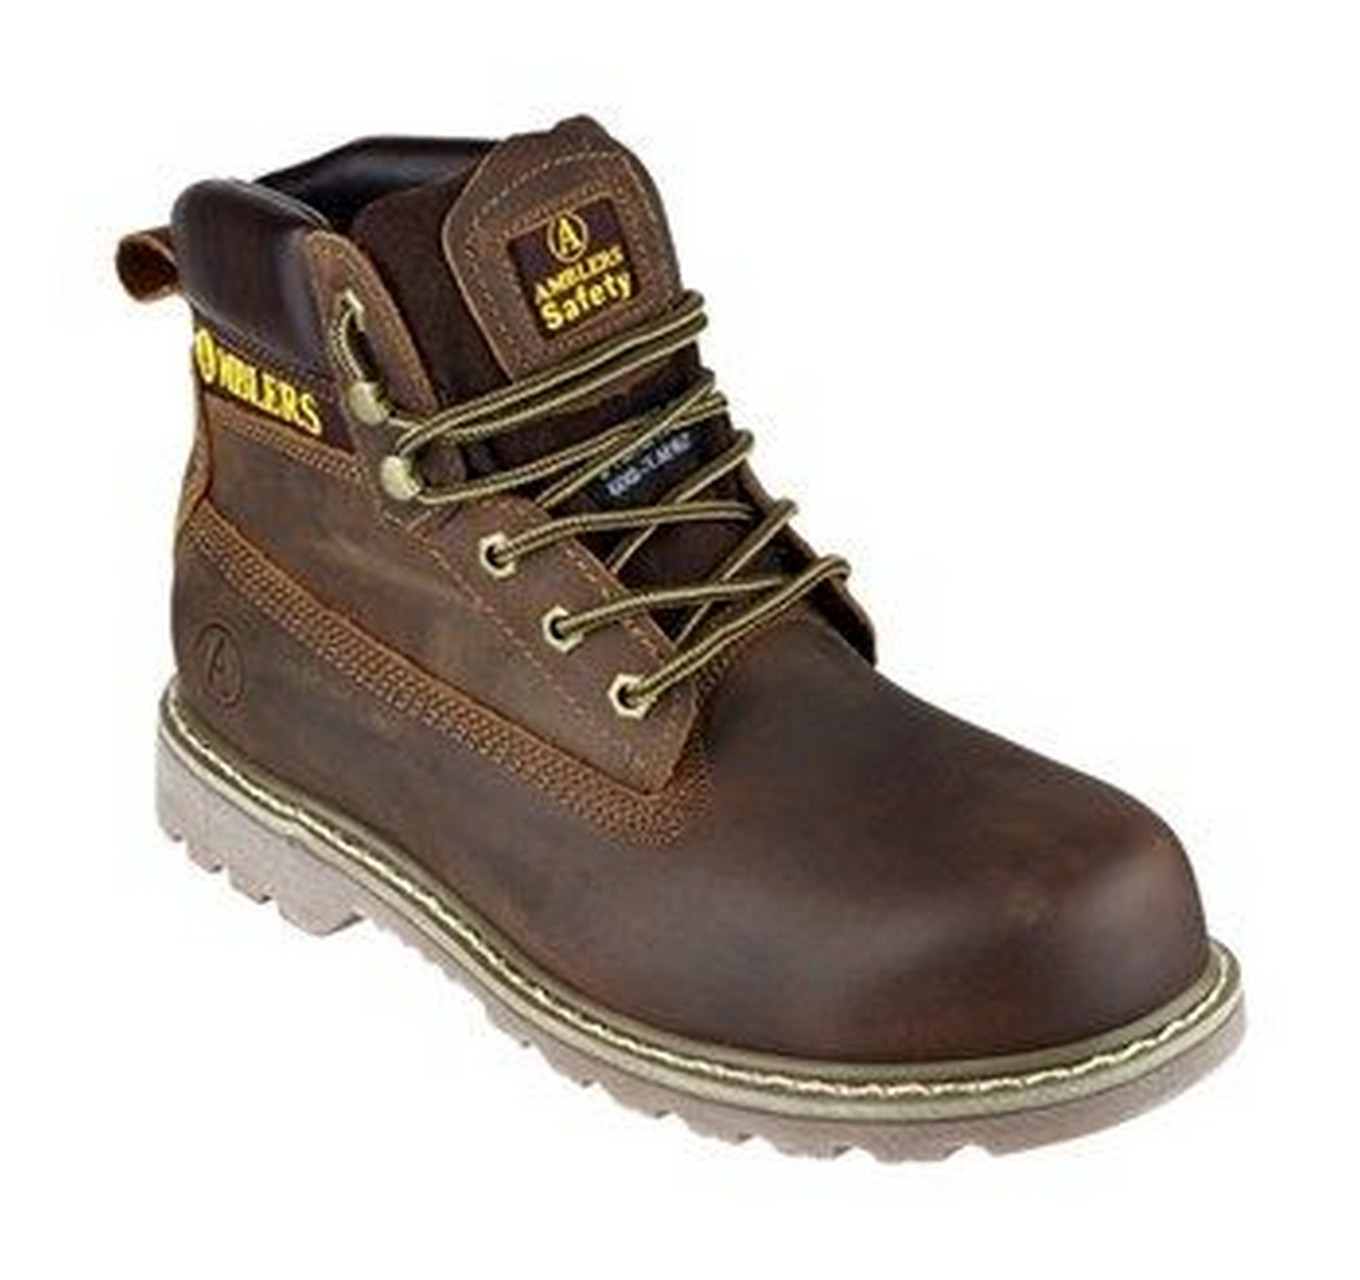 Safety Boot Amblers Fs164 7